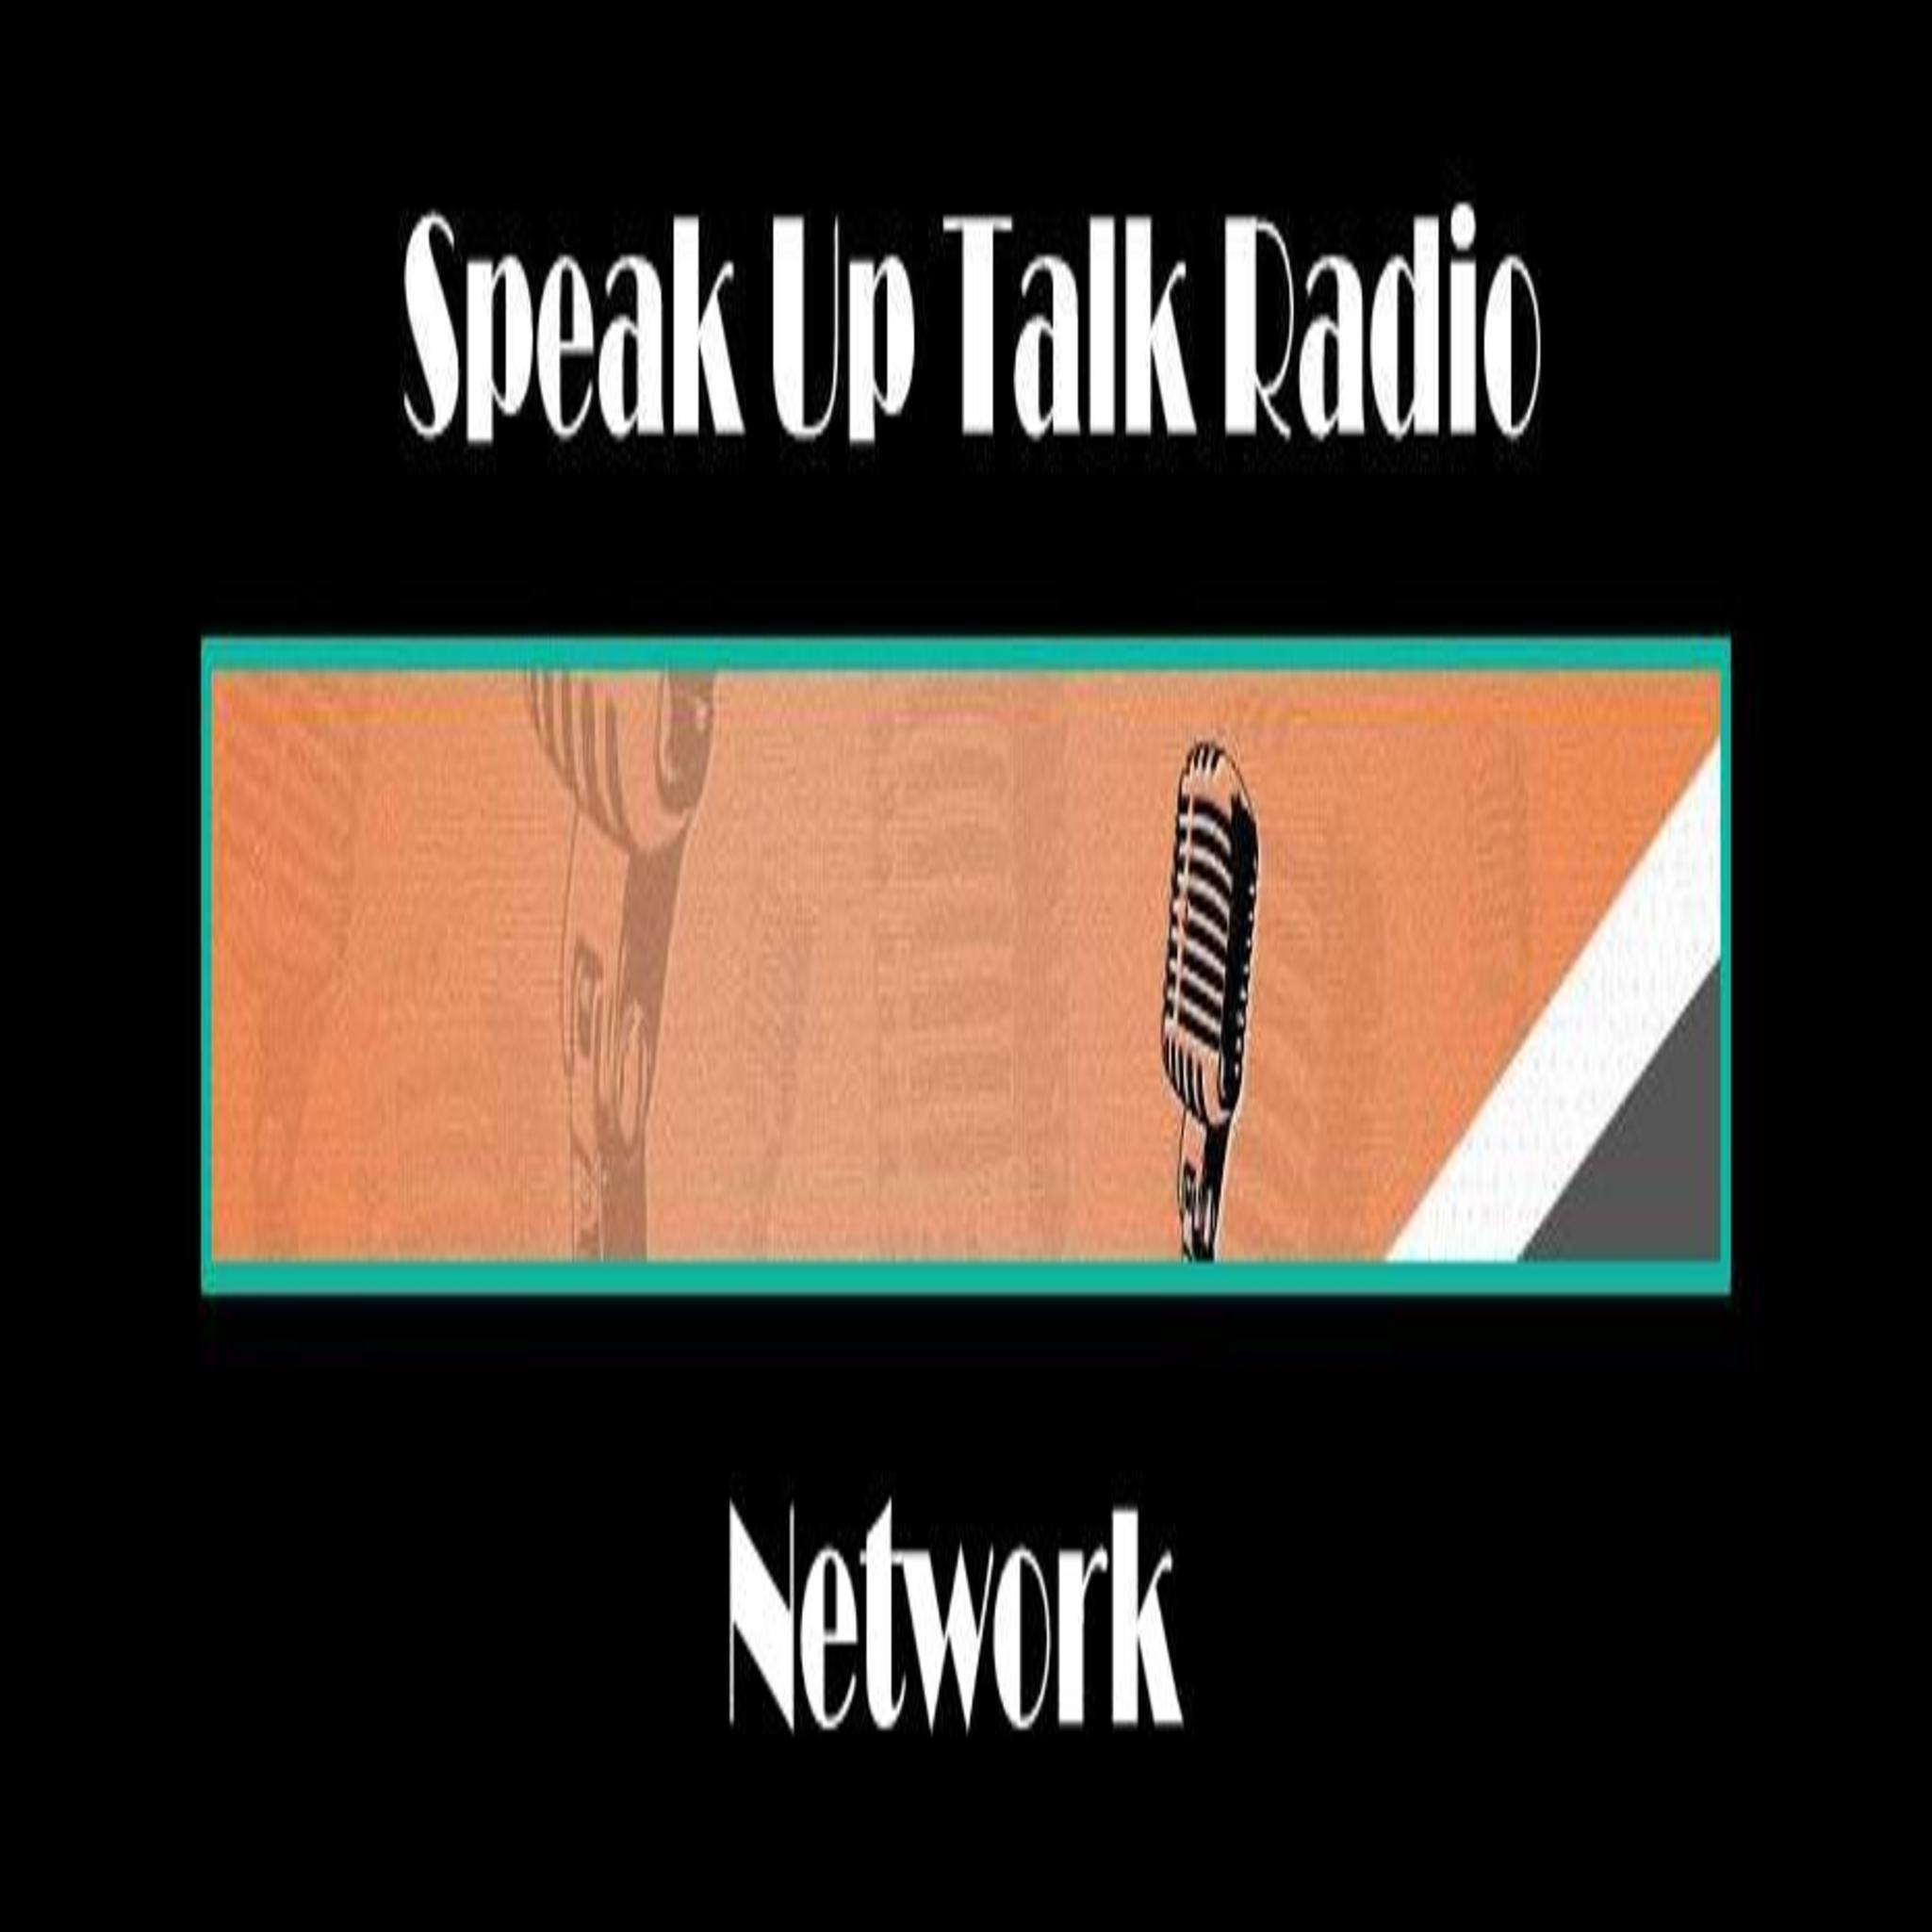 Speak Up Talk Radio Network